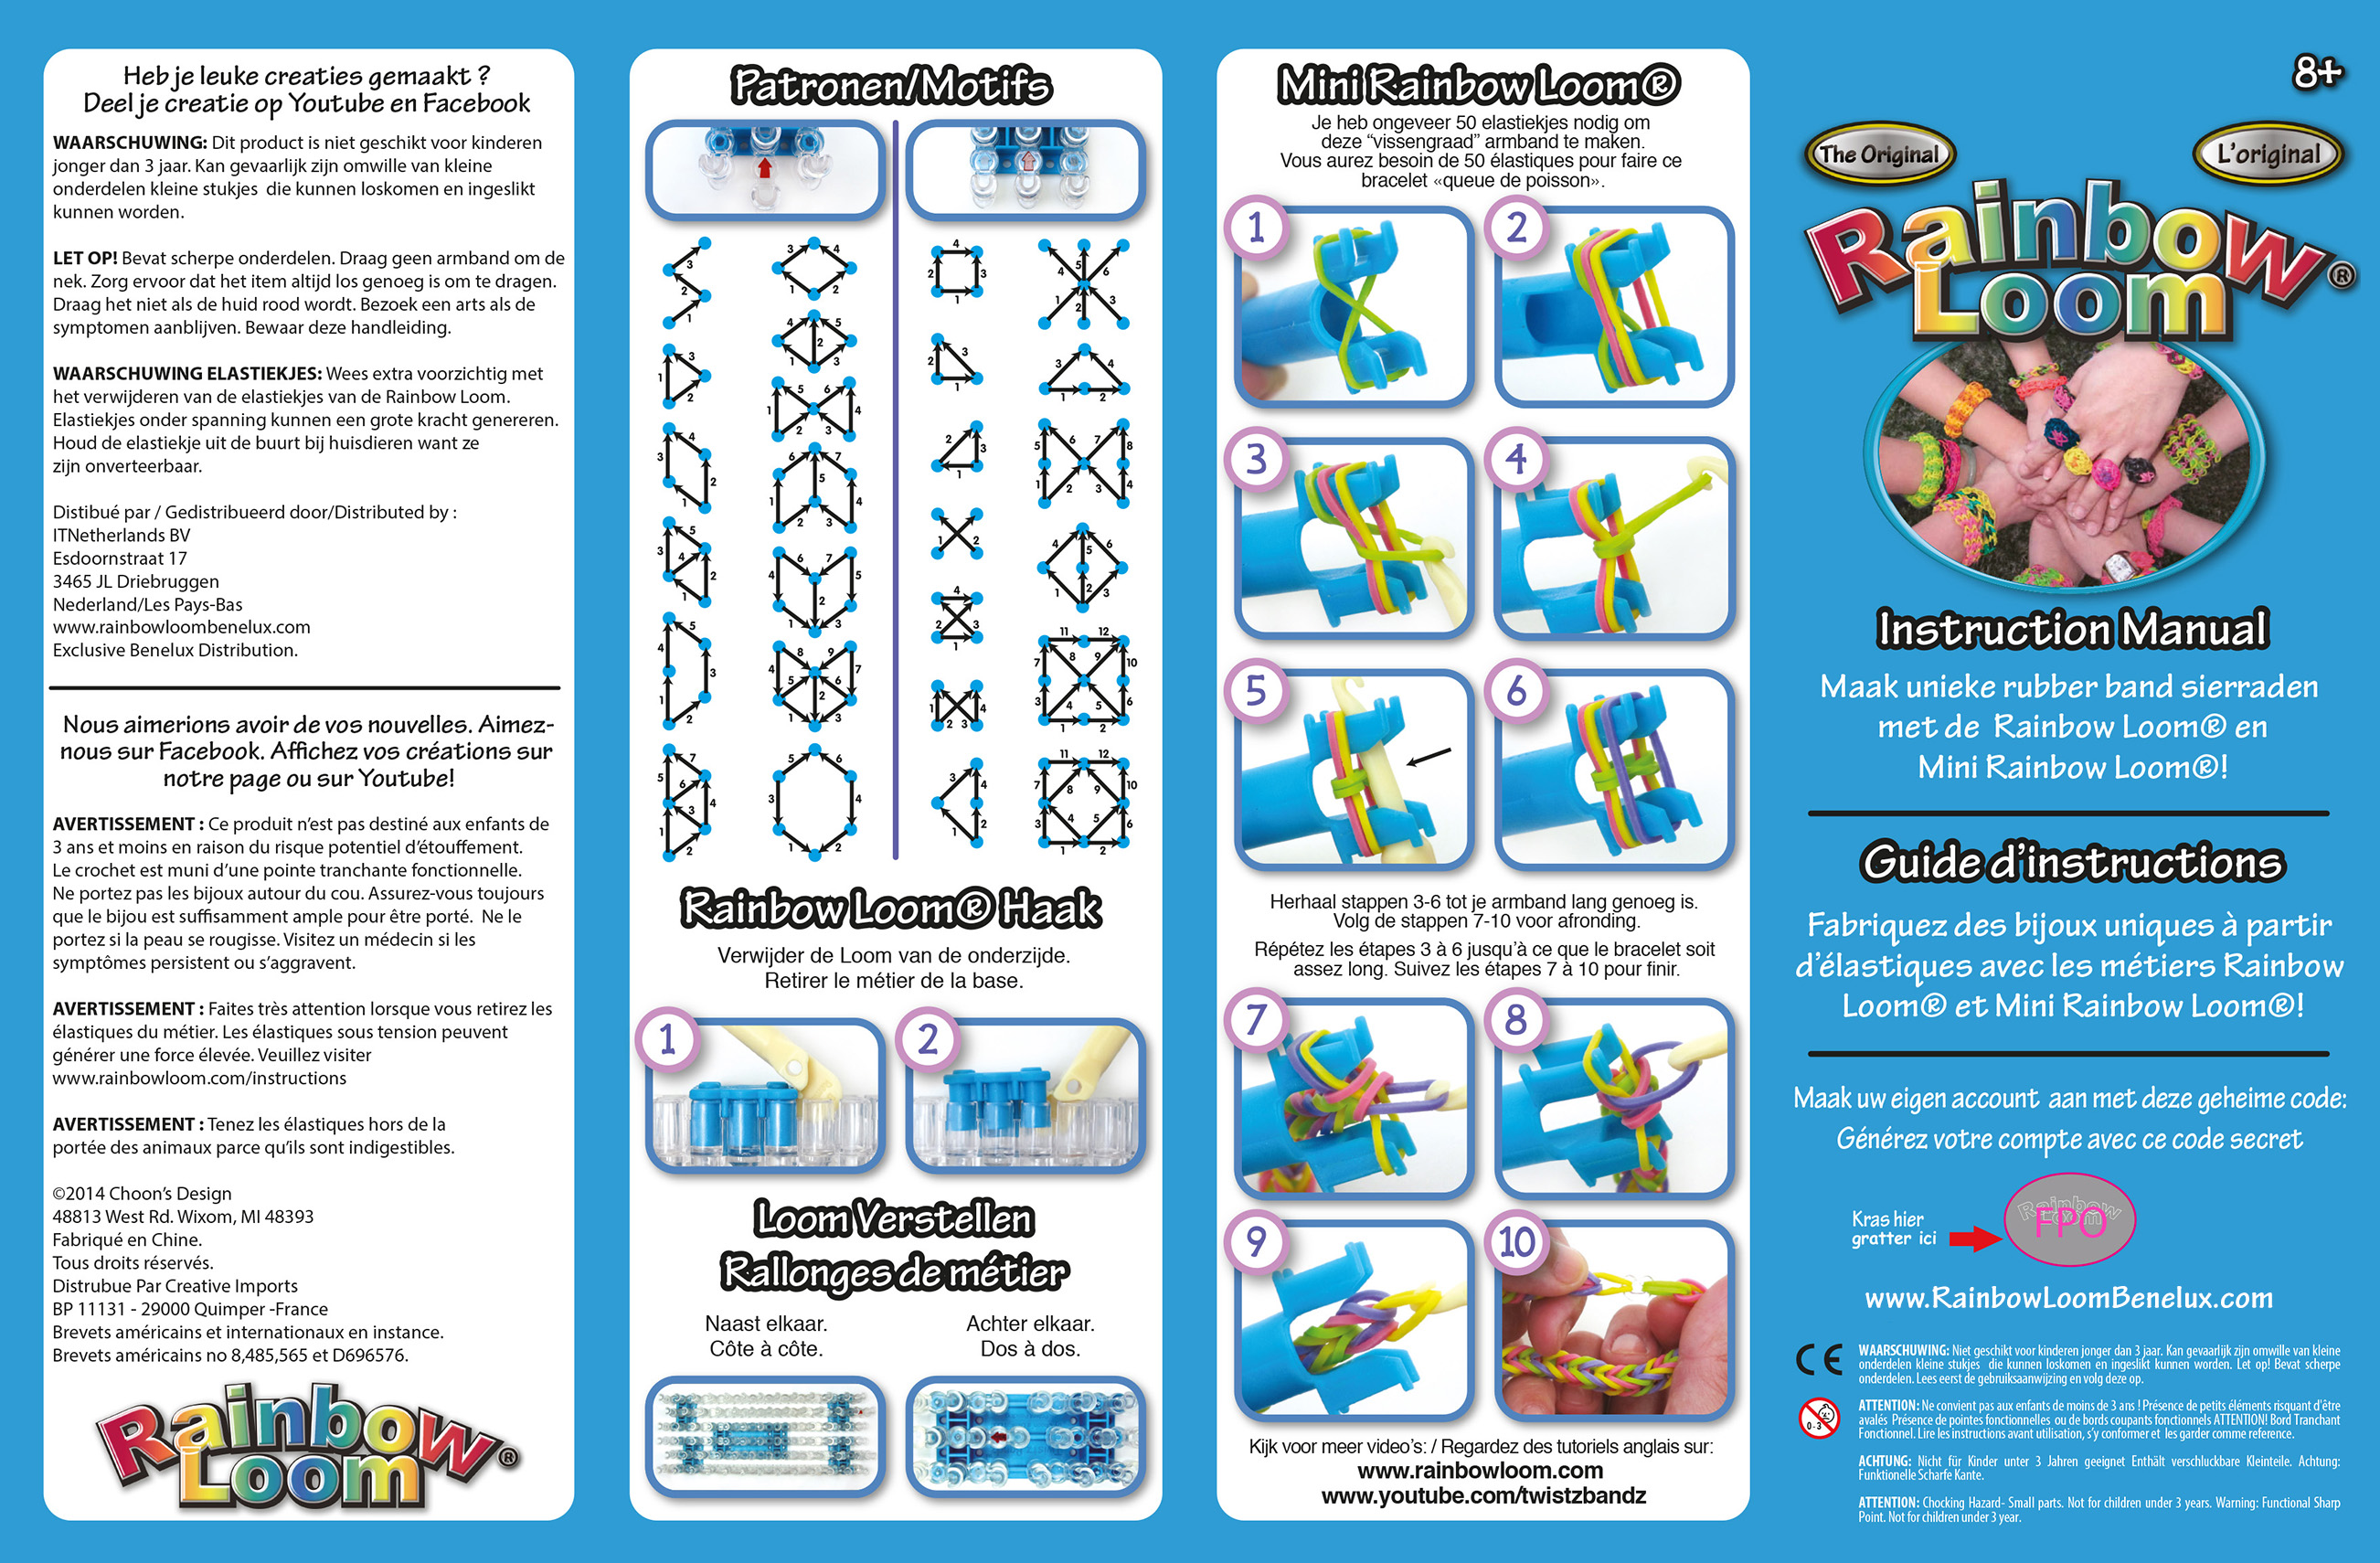 rainbow loom europe rh rainbowloomeurope com Dragonscale Rainbow Loom Bracelet Rainbow Loom Instruction Manual